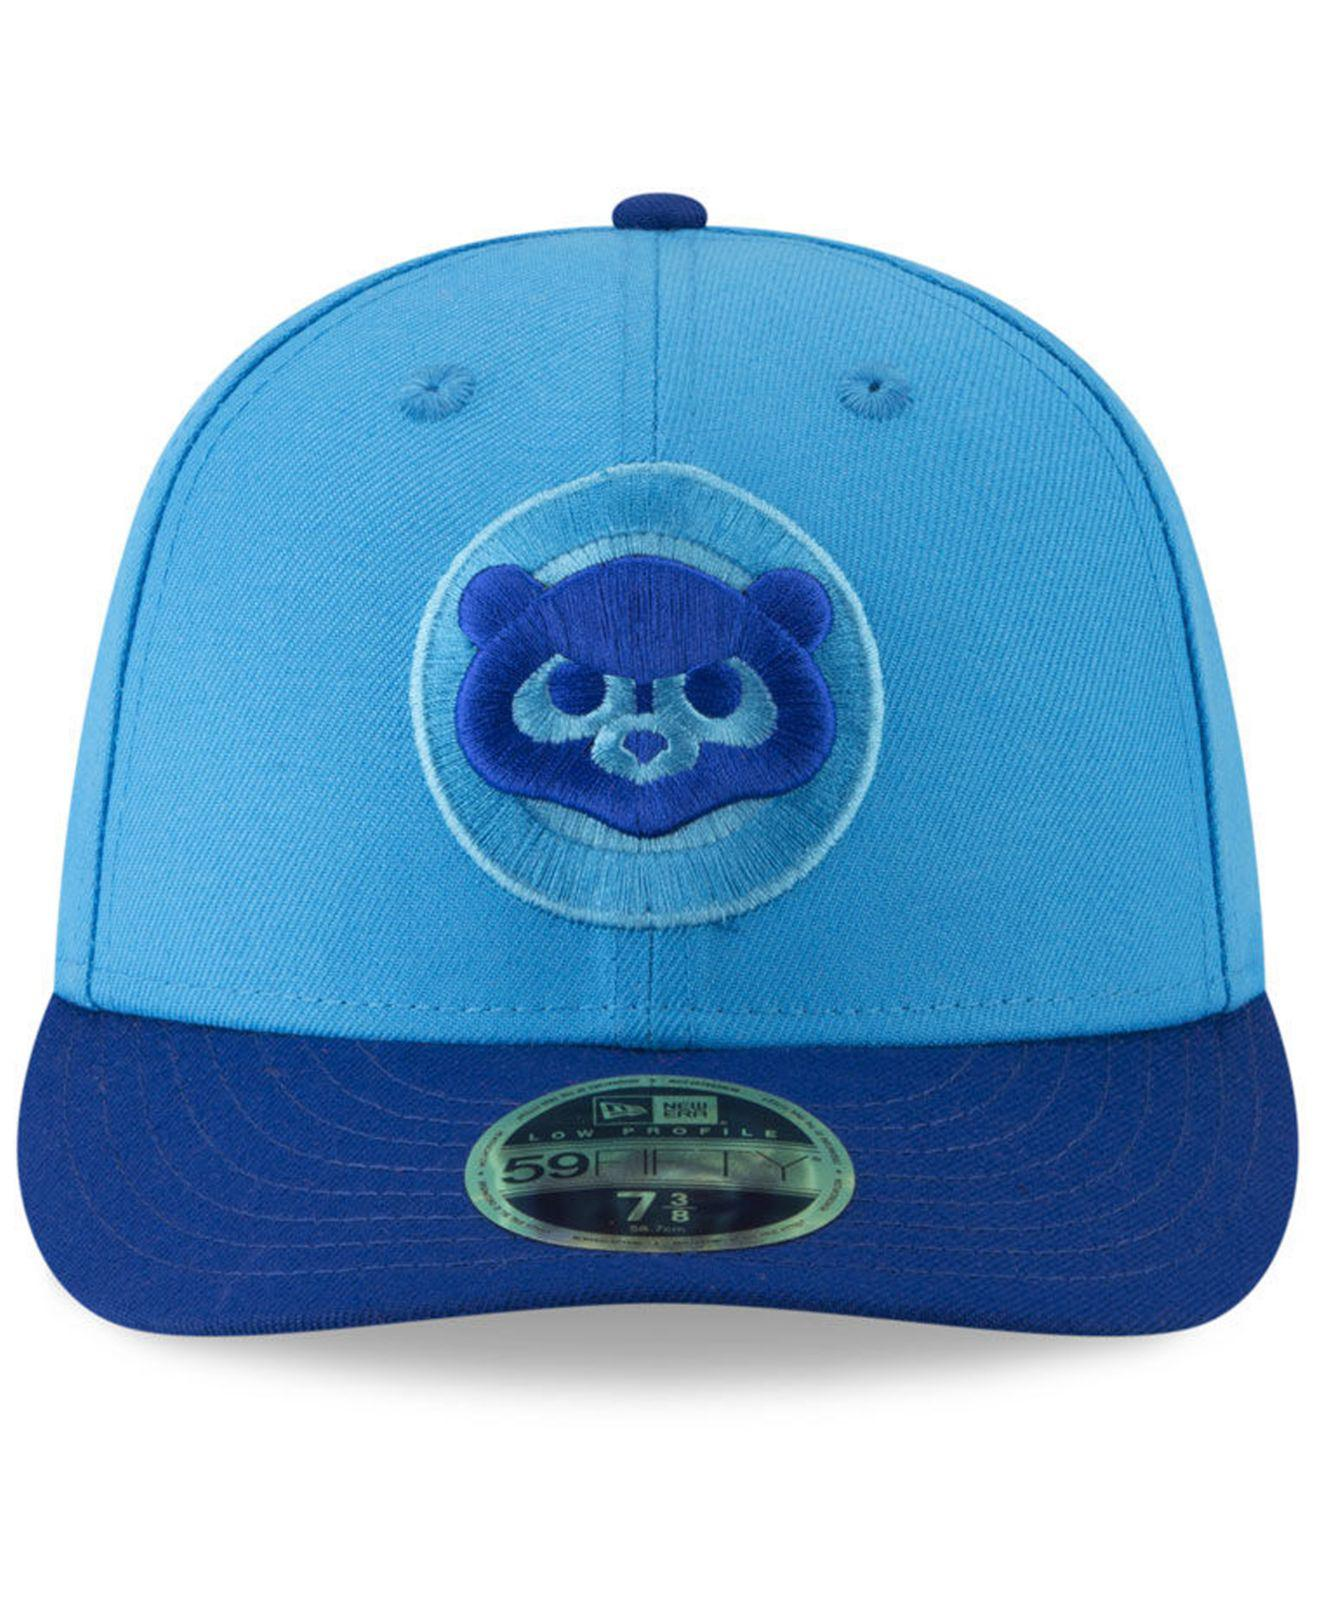 a772e2fdeff Lyst - KTZ Chicago Cubs Players Weekend Low Profile 59fifty Fitted Cap in  Blue for Men